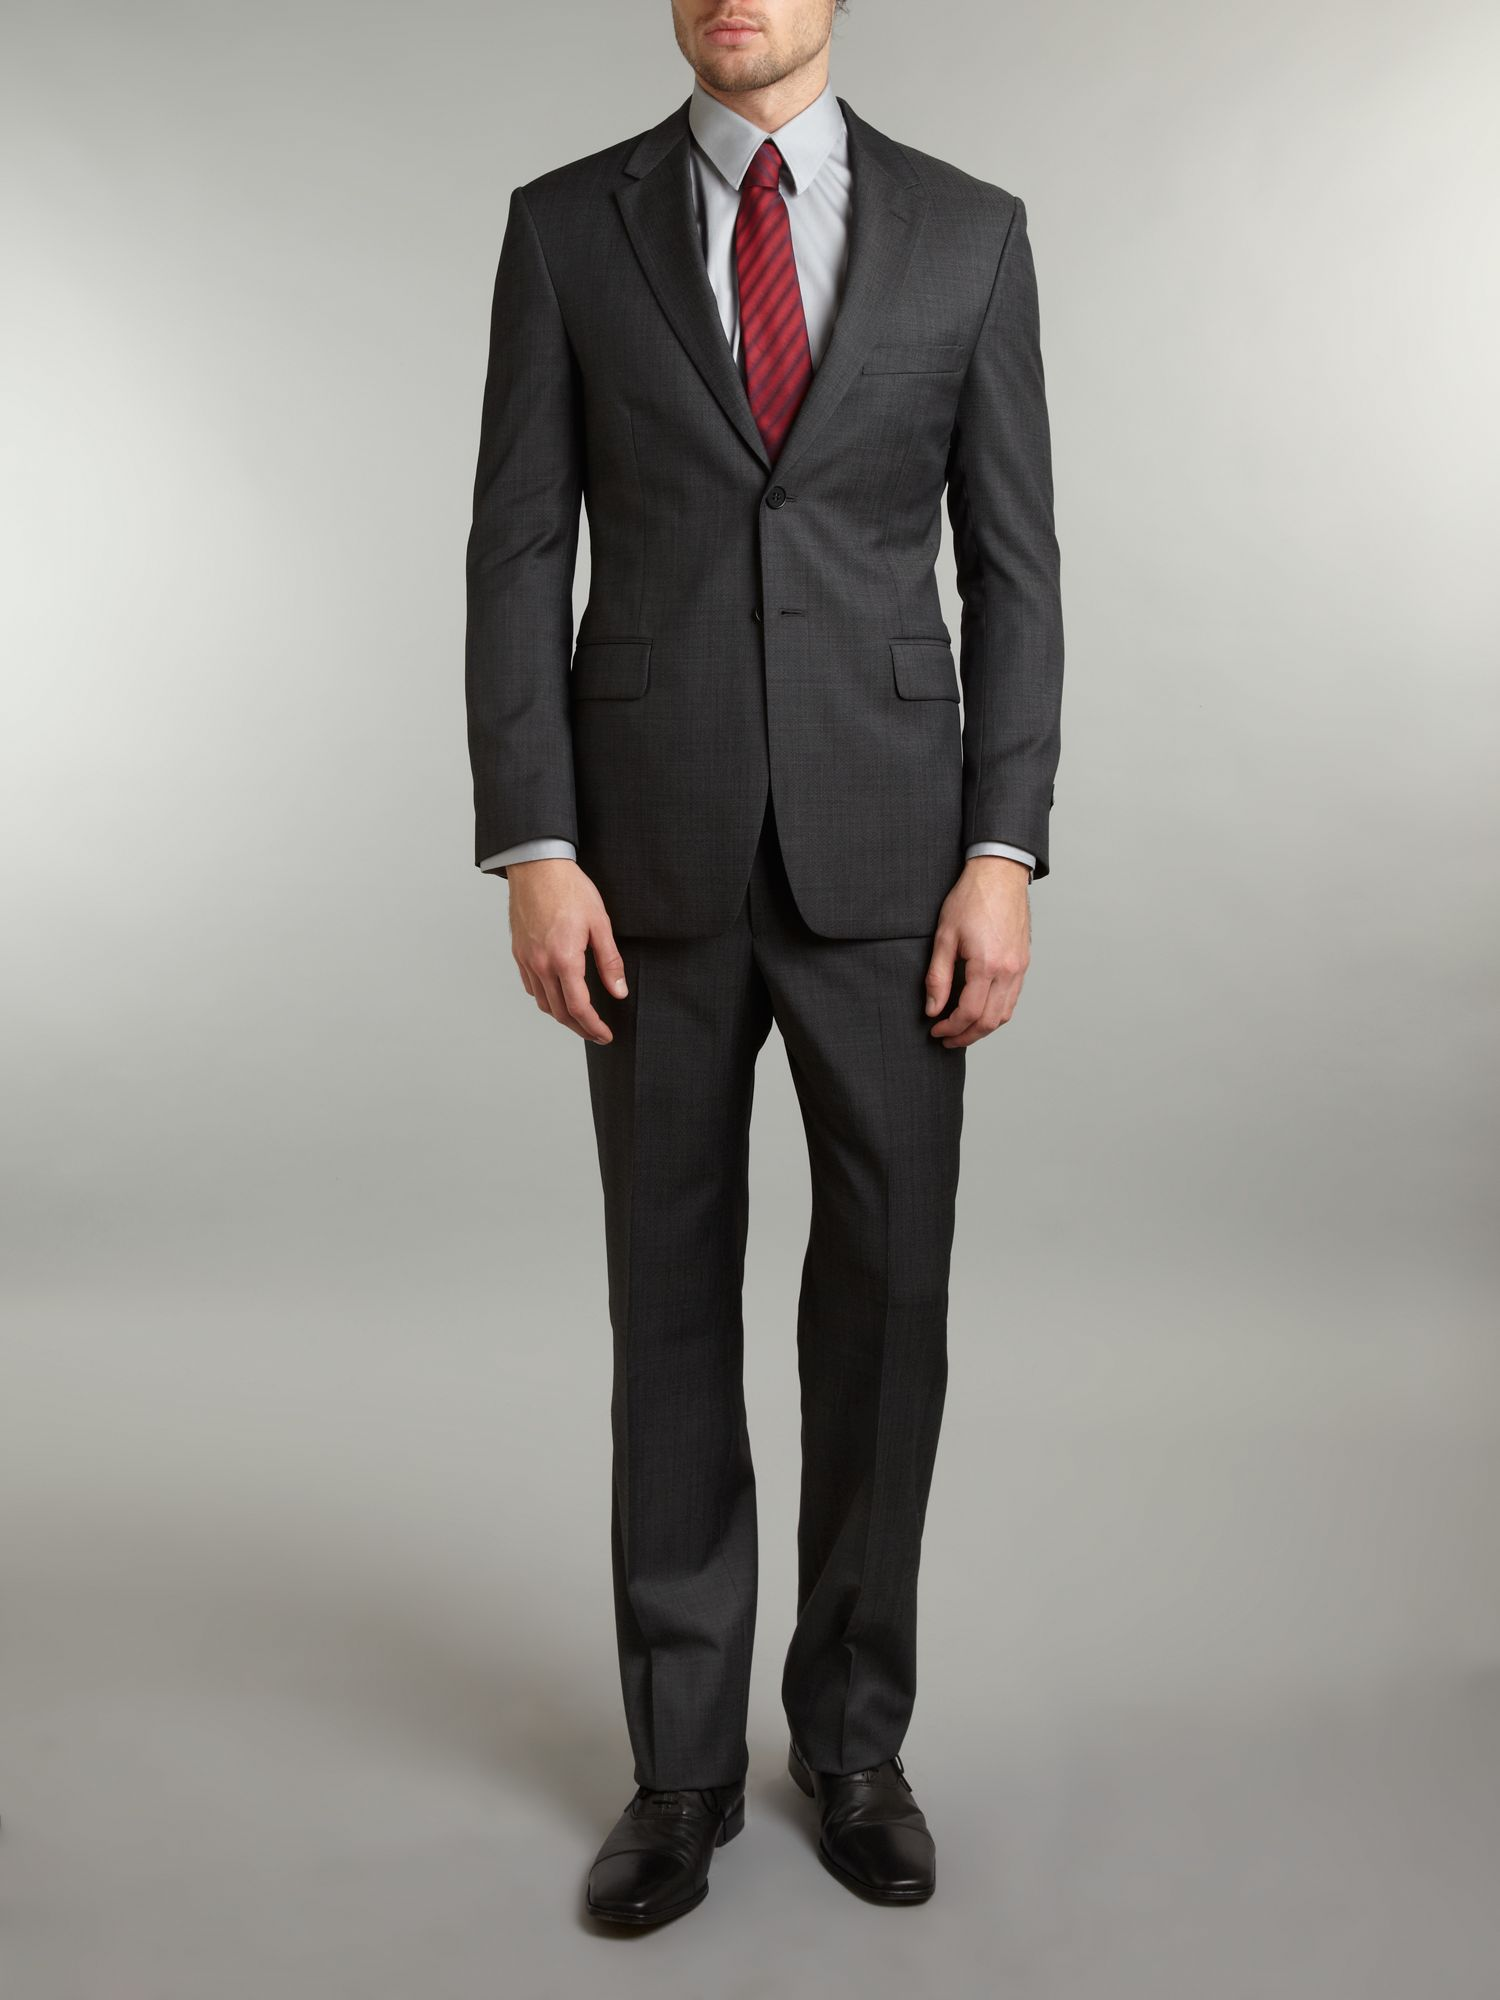 Will pindot suit